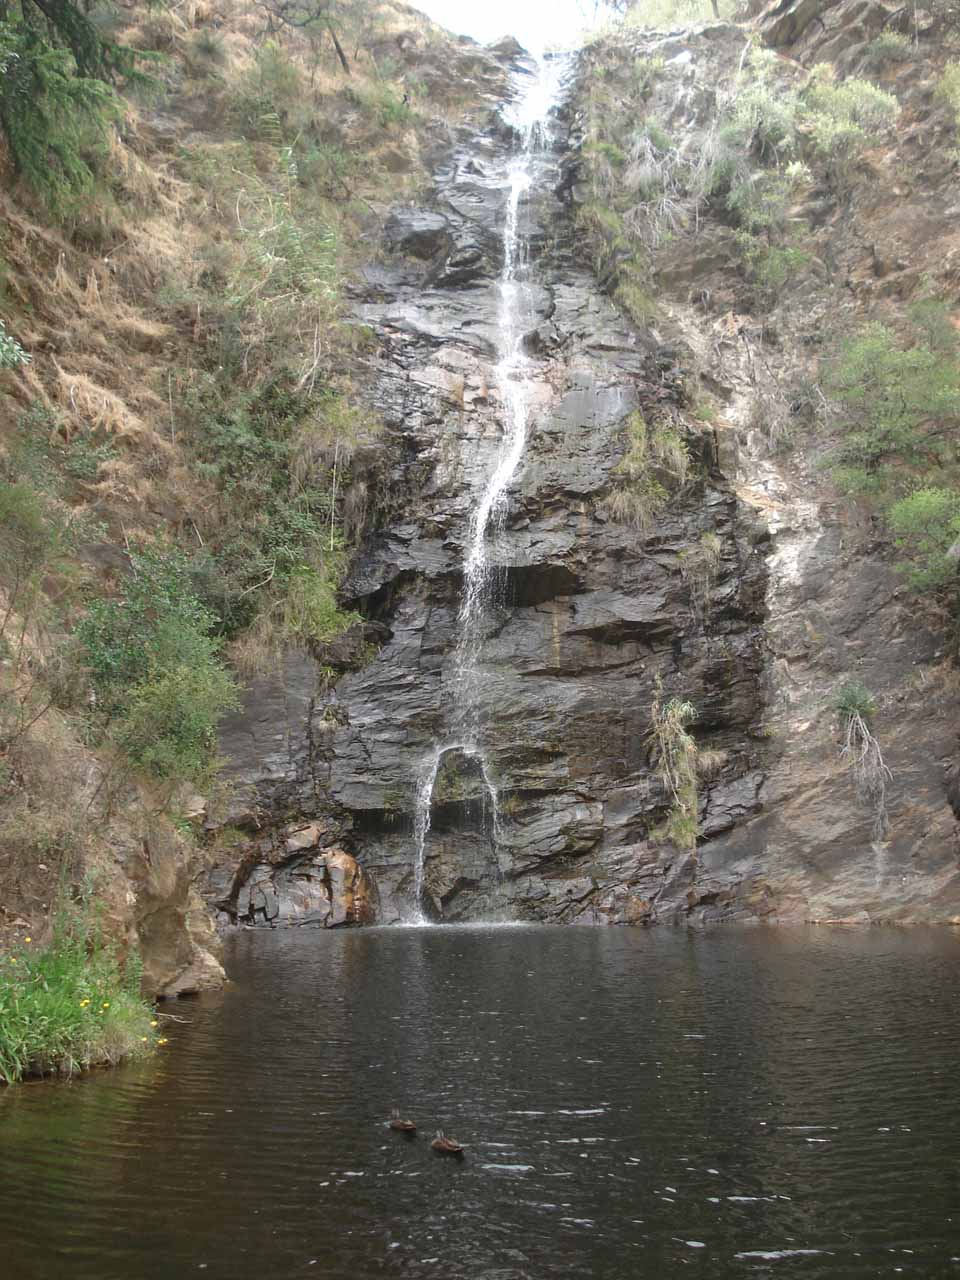 View from across the plunge pool of the First Falls fronted by a pair of ducks